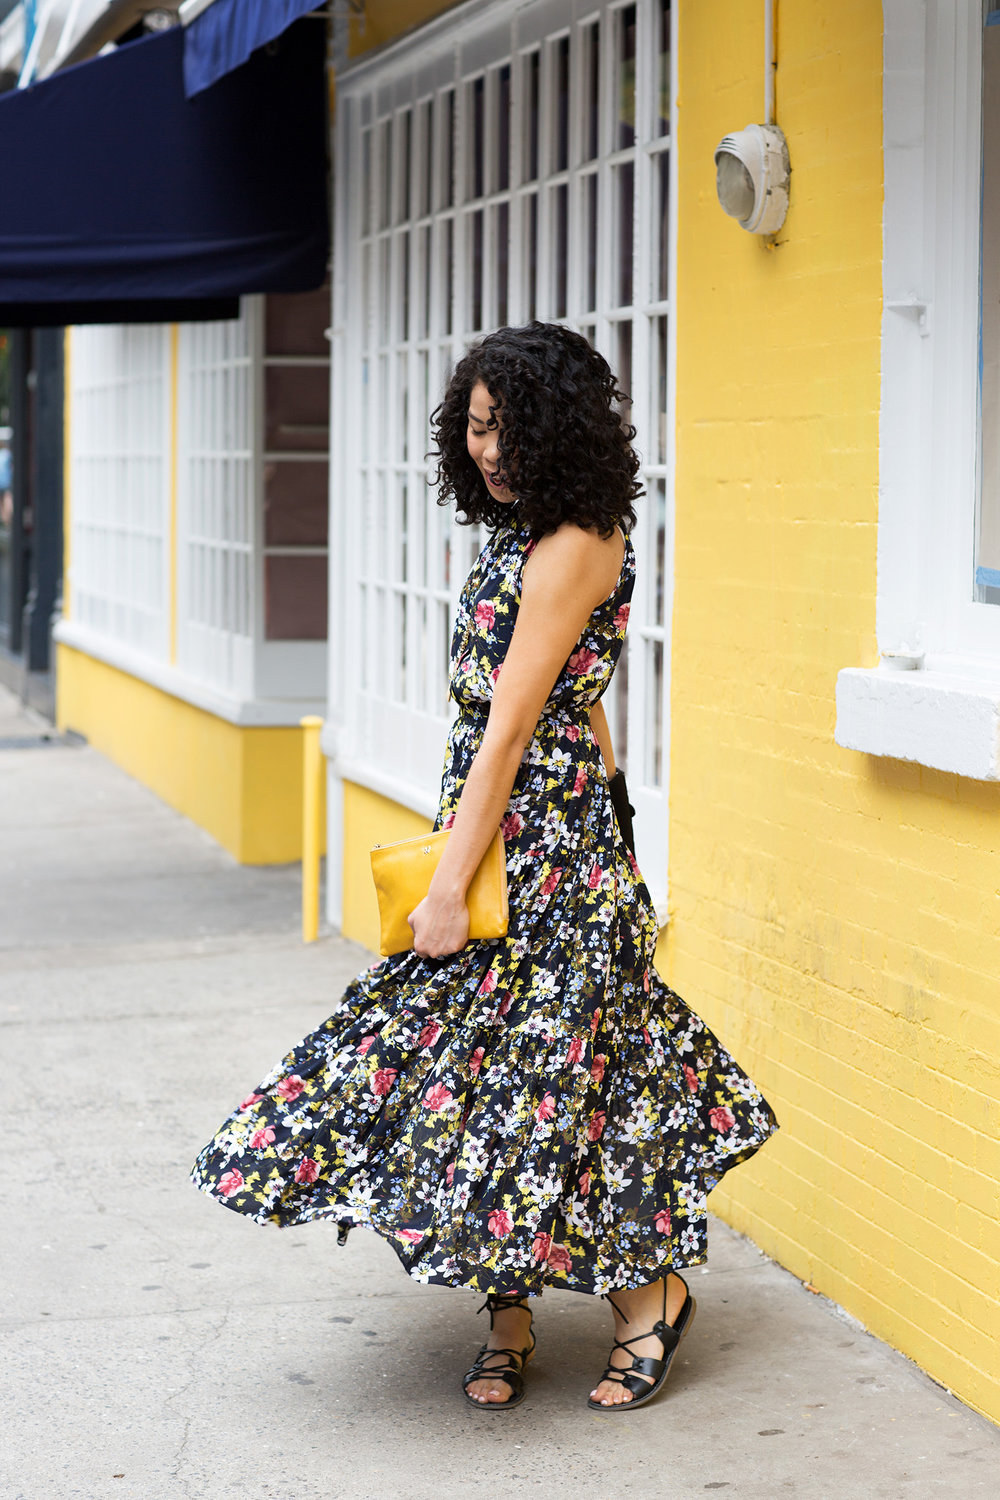 banana_republic_floral_dress.jpg